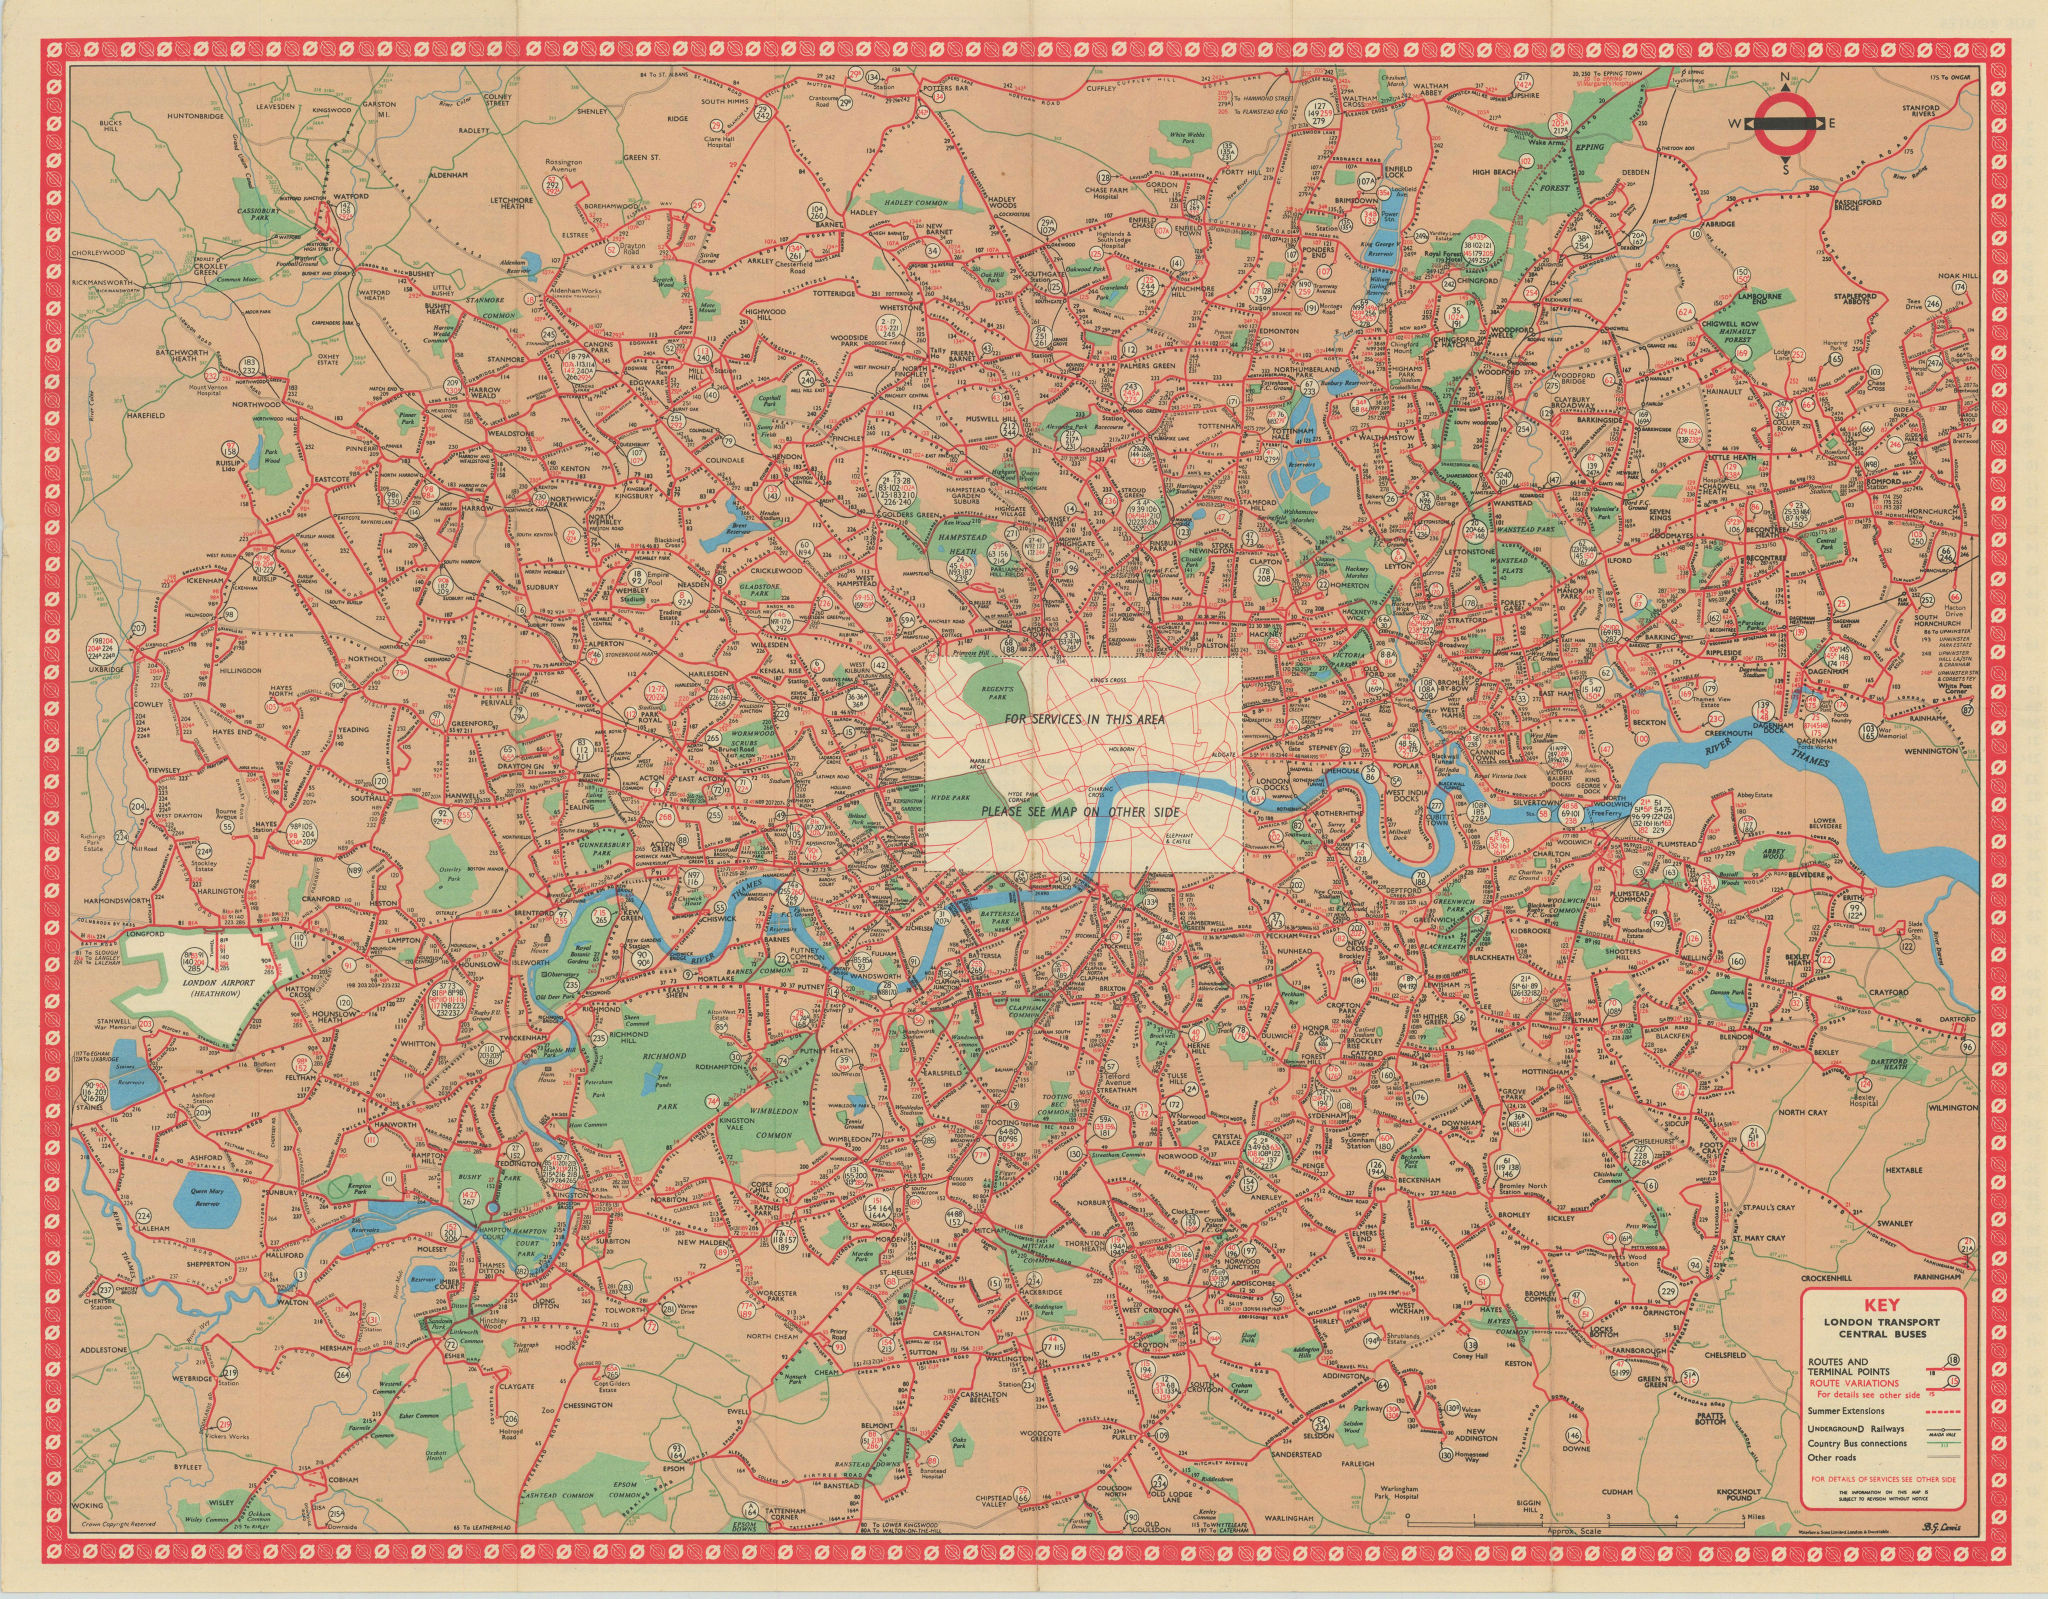 London Transport Central Buses map and list of routes. LEWIS #2 1964 old